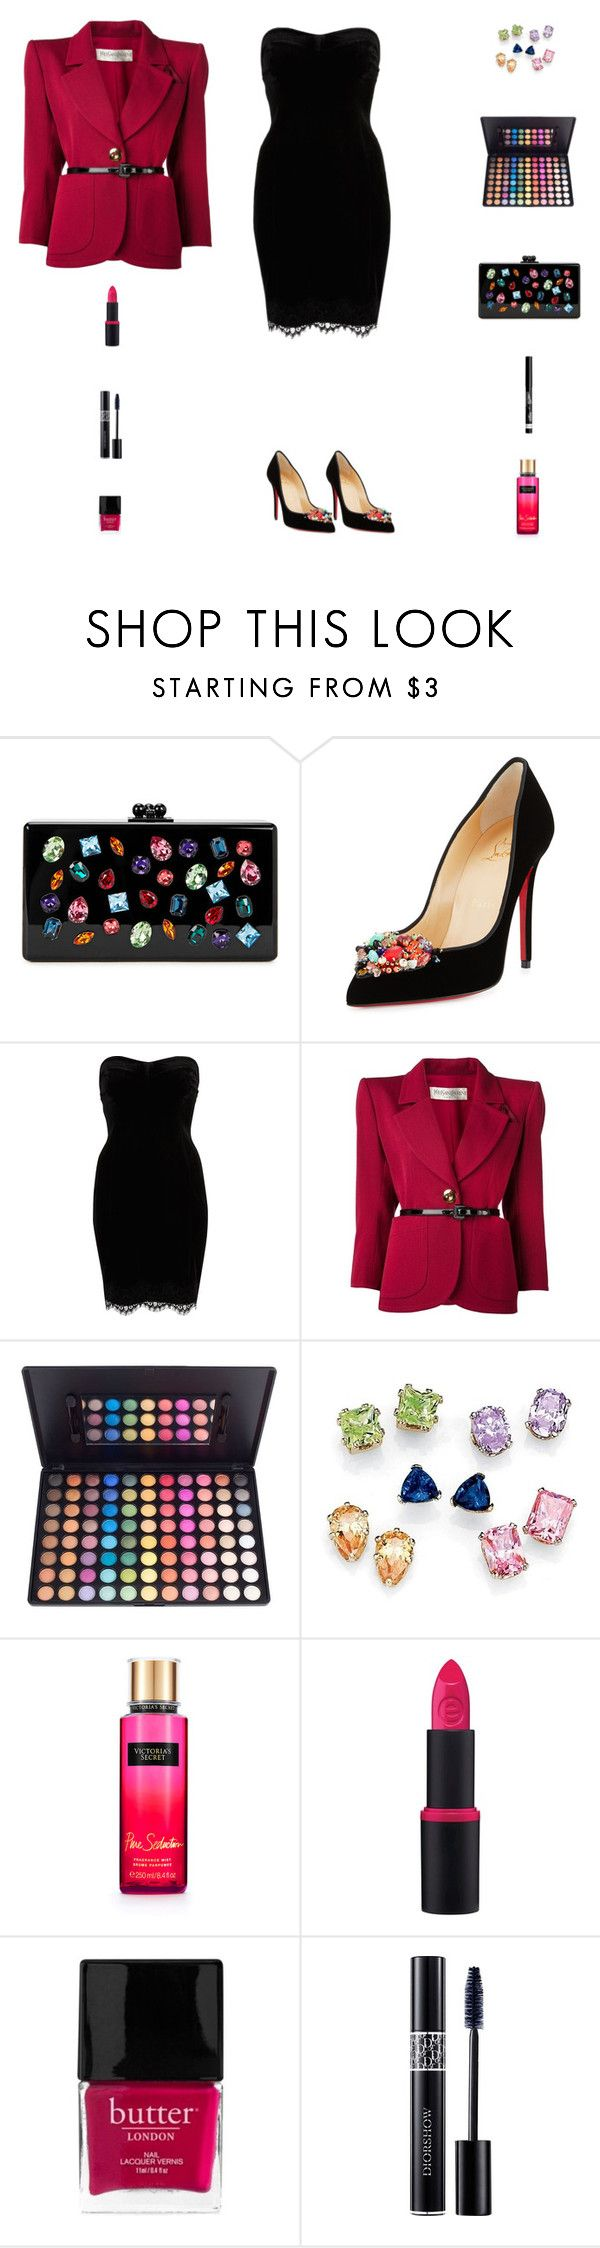 """""""Contest: Black & Fuchsia Outfit With Multicolor Crystals"""" by billsacred ❤ liked on Polyvore featuring Edie Parker, Christian Louboutin, River Island, Yves Saint Laurent, Palm Beach Jewelry, Essence, Butter London, Christian Dior and Rimmel"""